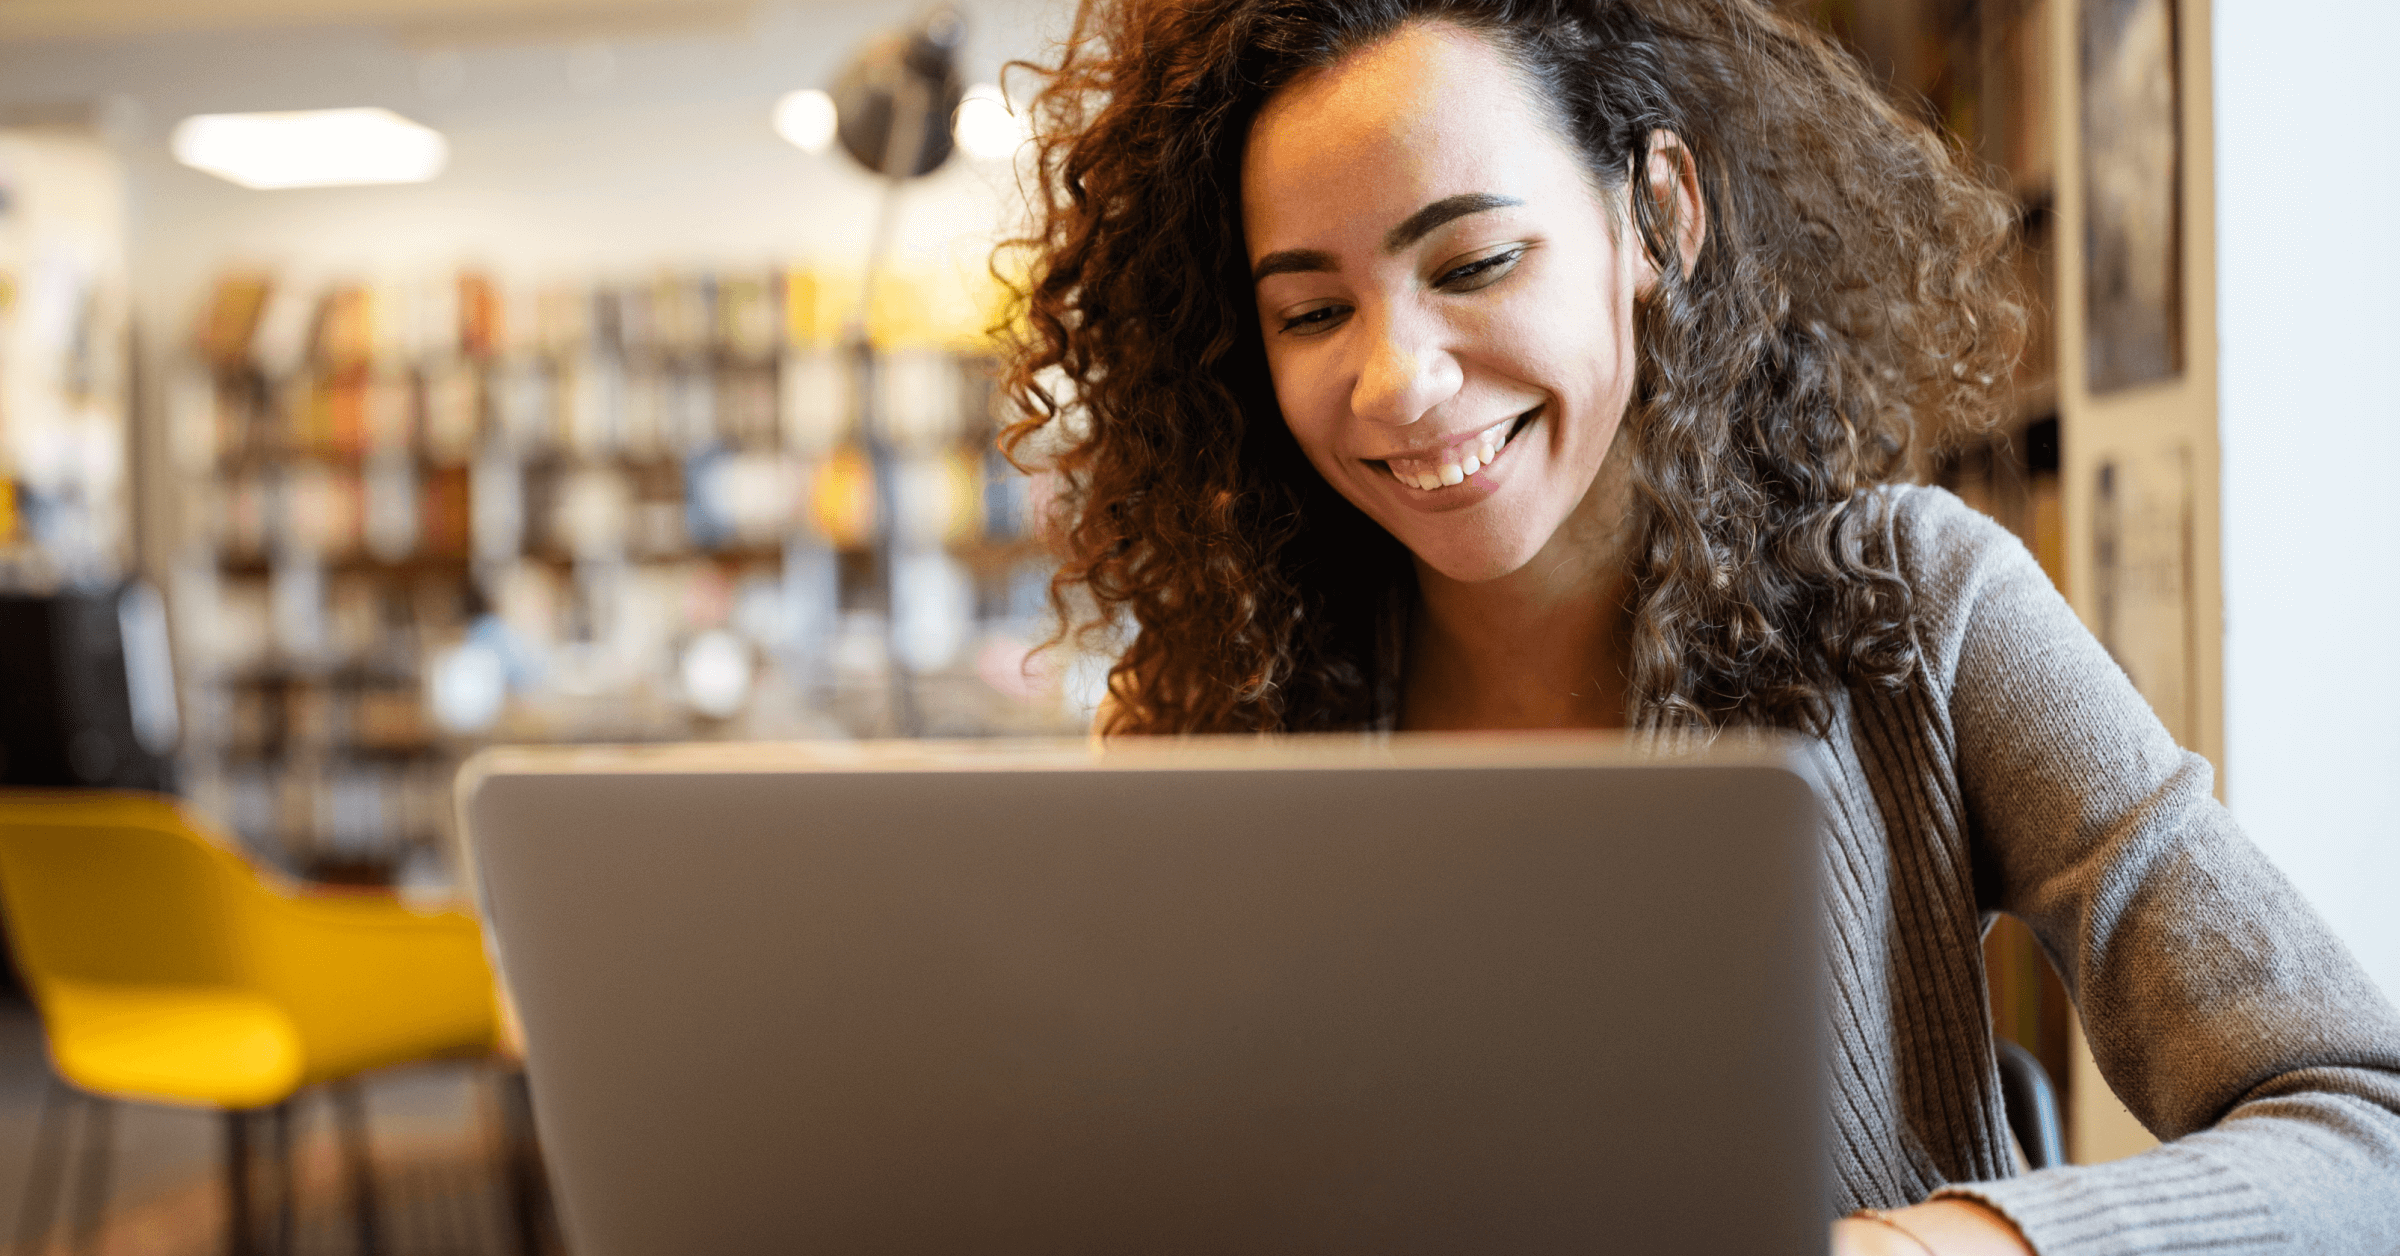 A young woman smiles while looking at her laptop computer.